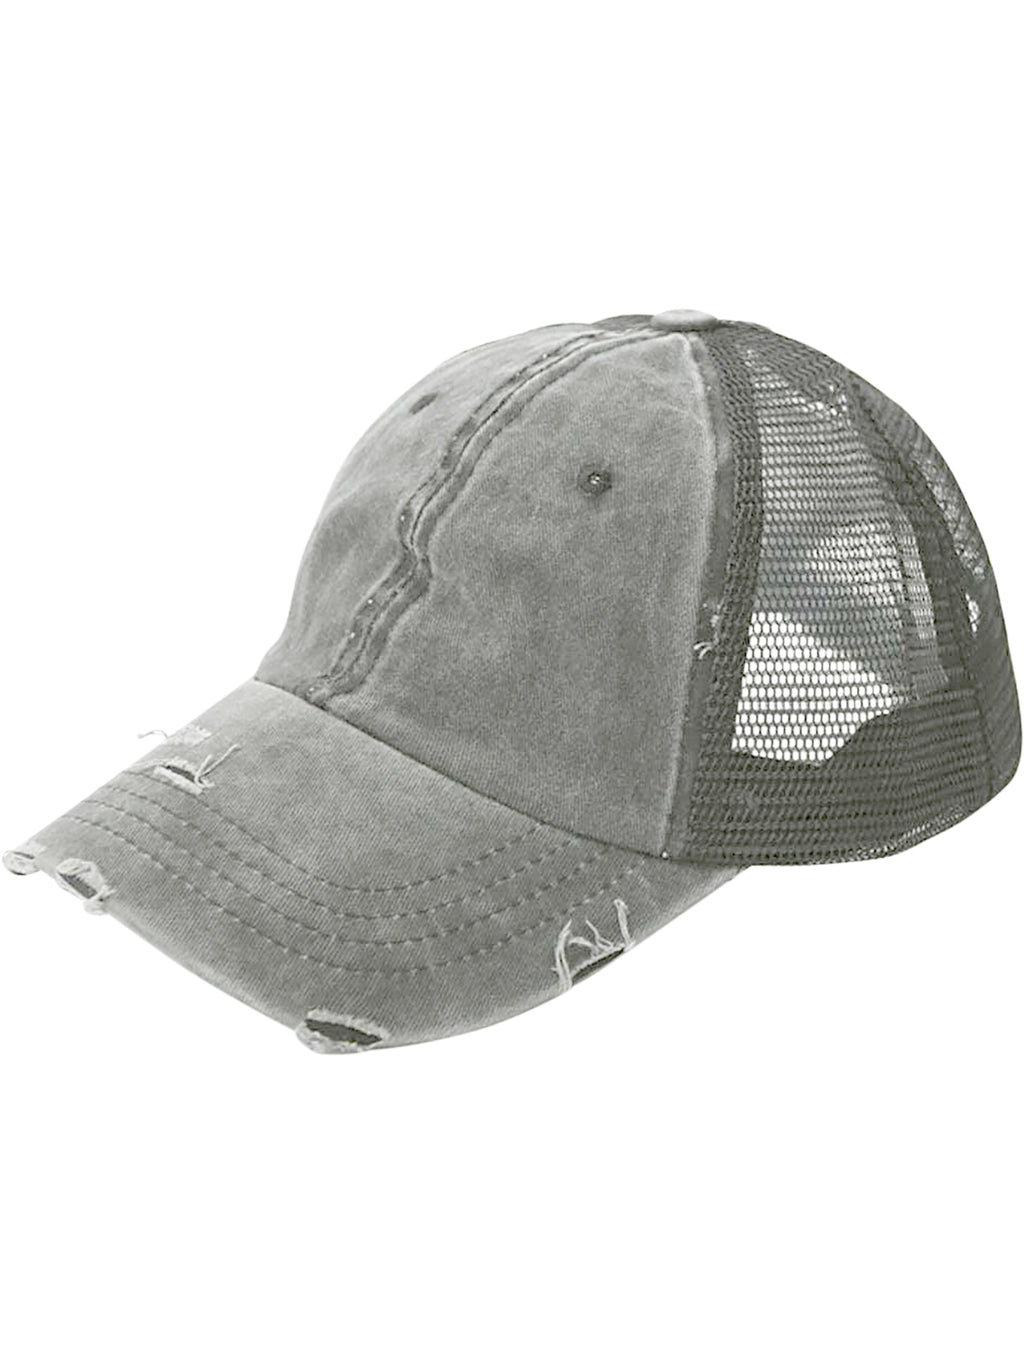 Gray Baseball Ponytail Hat